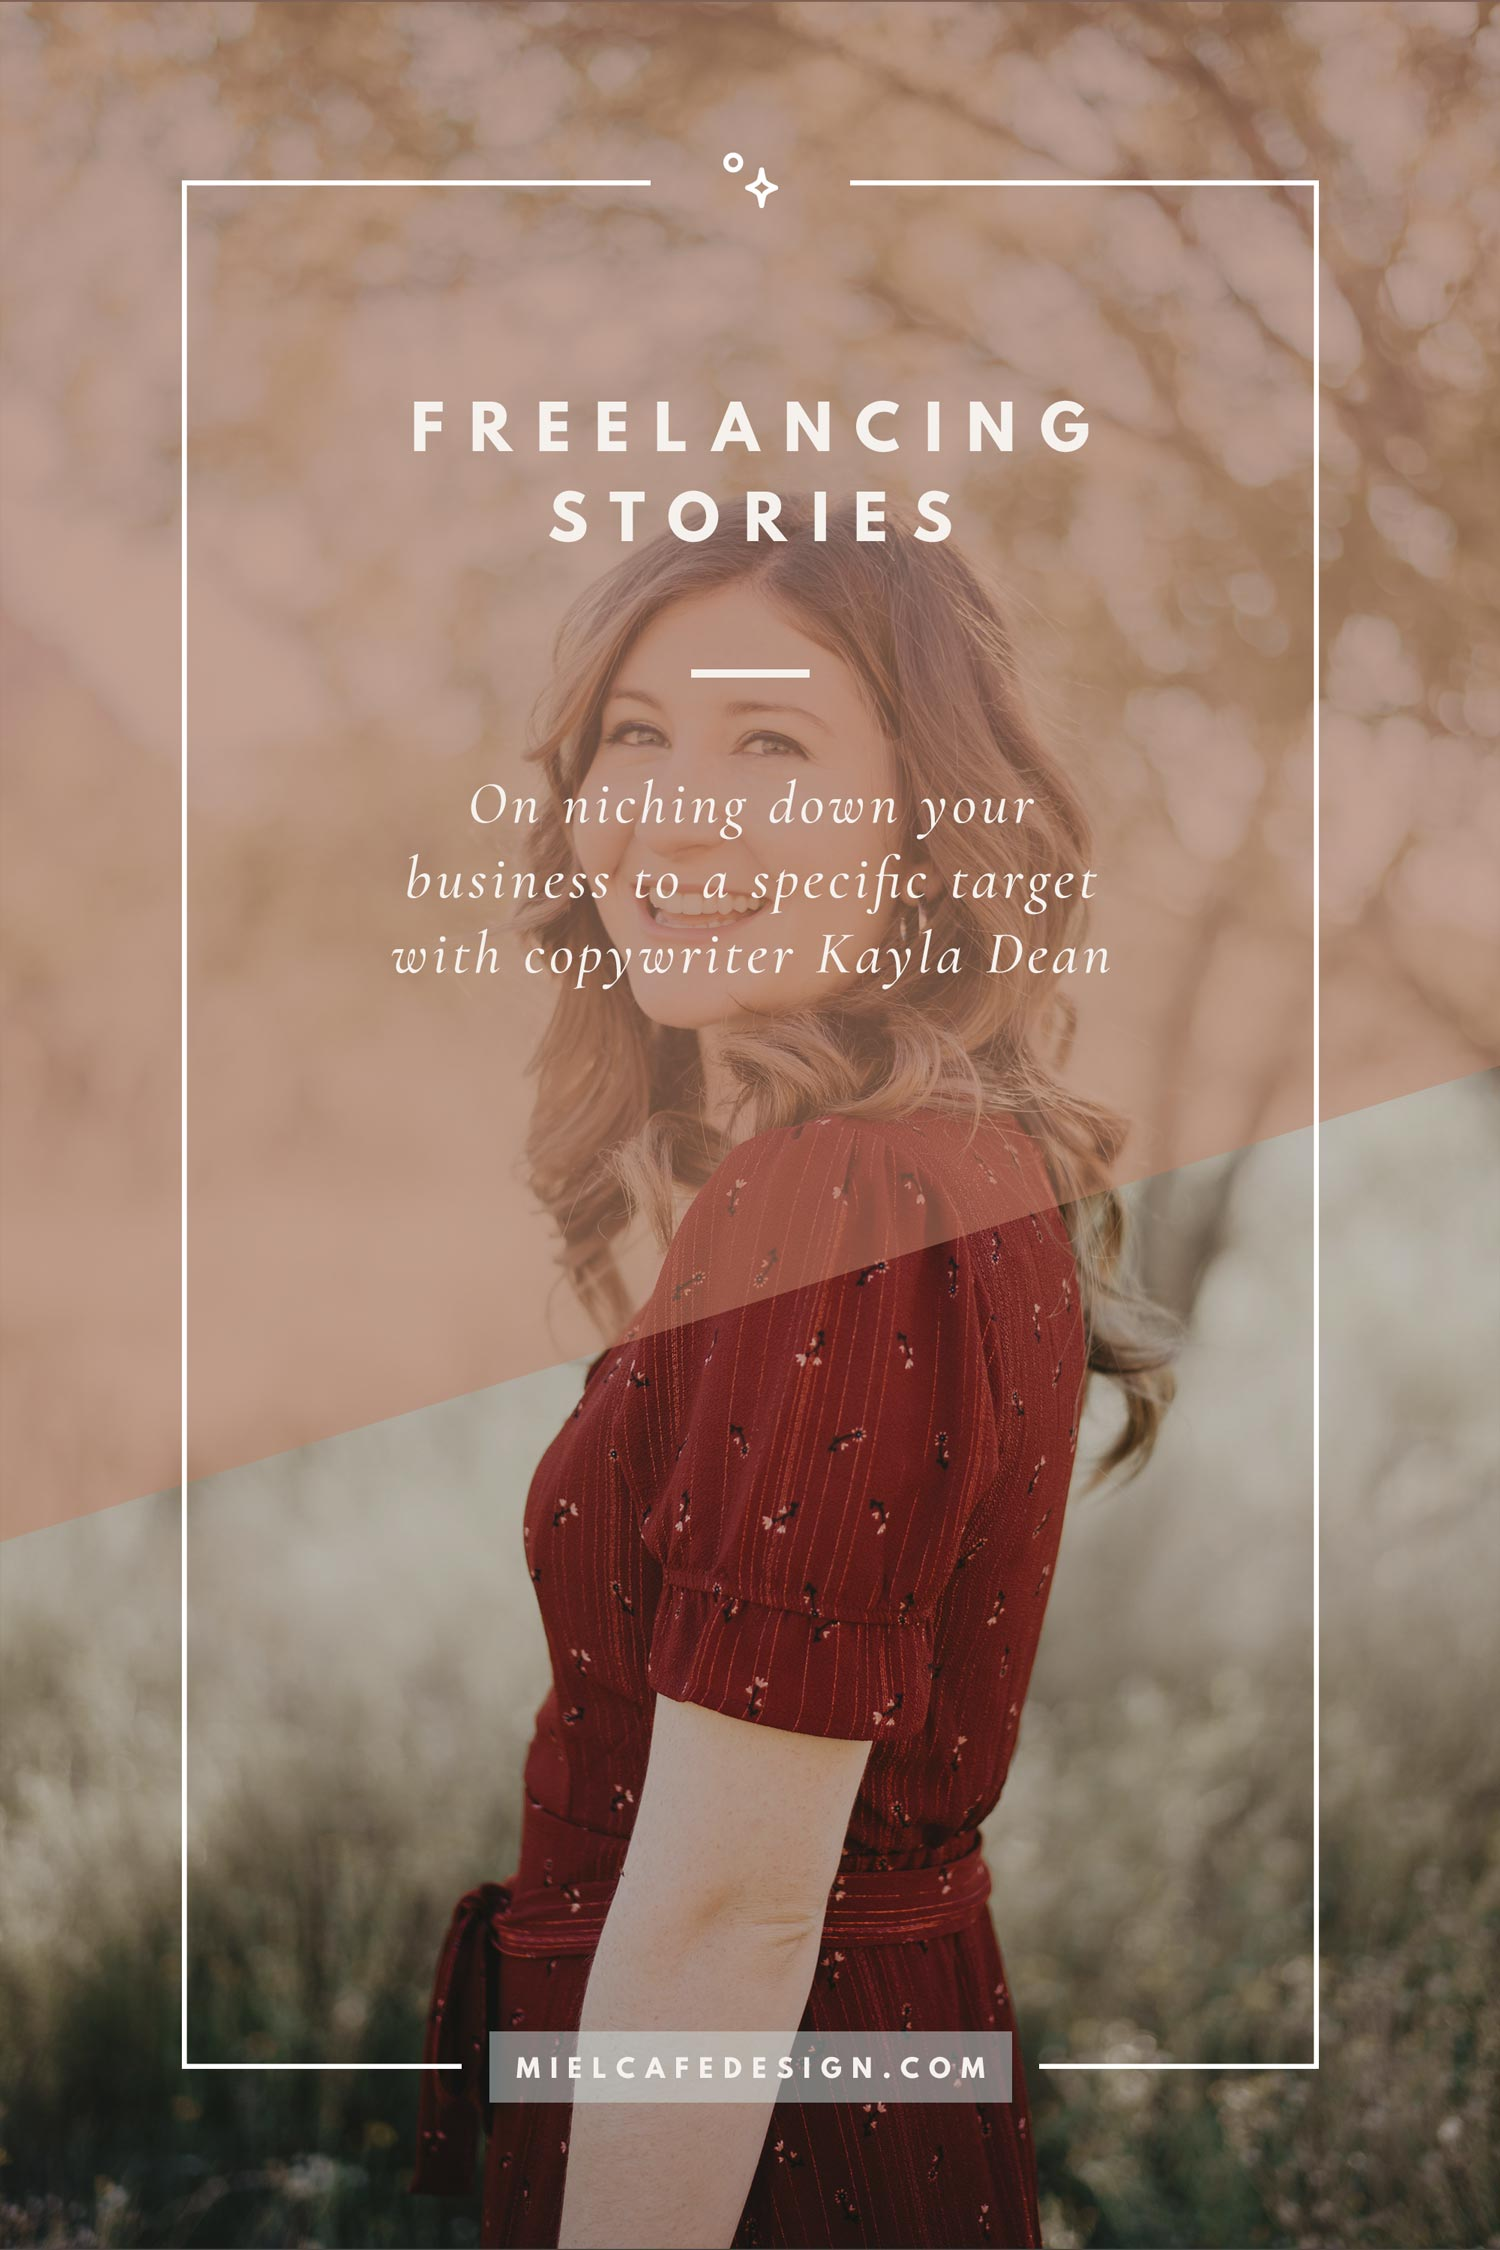 Freelancing Stories: Niching Your Business Down To A Specific Target with Copywriter Kayla Dean